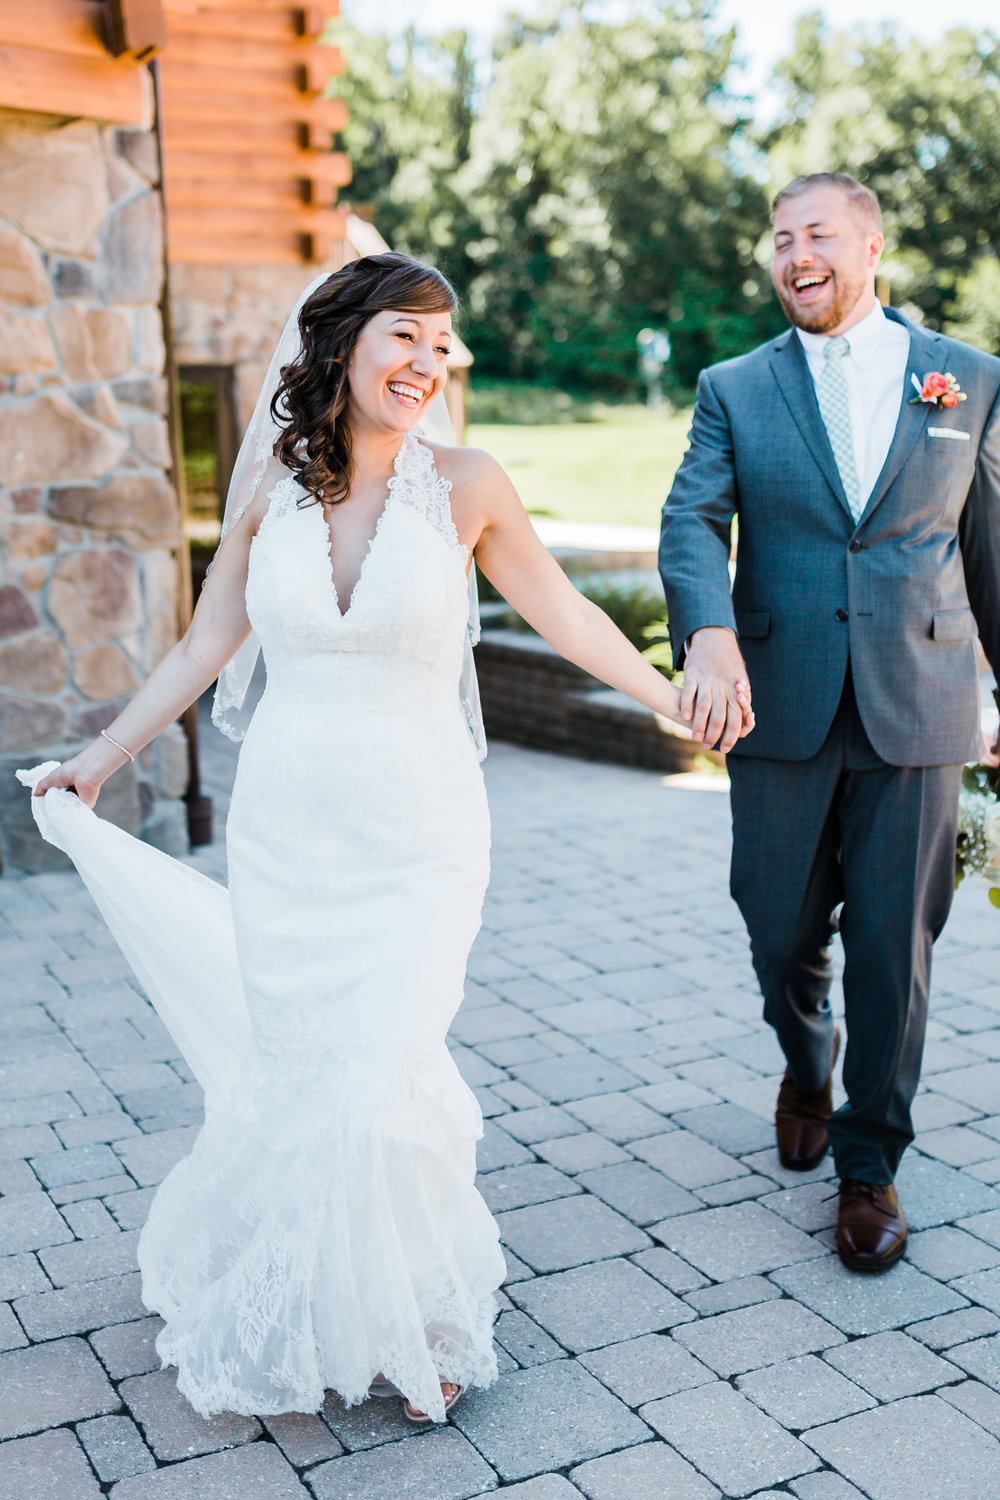 bride and groom running and laughing together - adventurous weddings - mountain wedding inspo